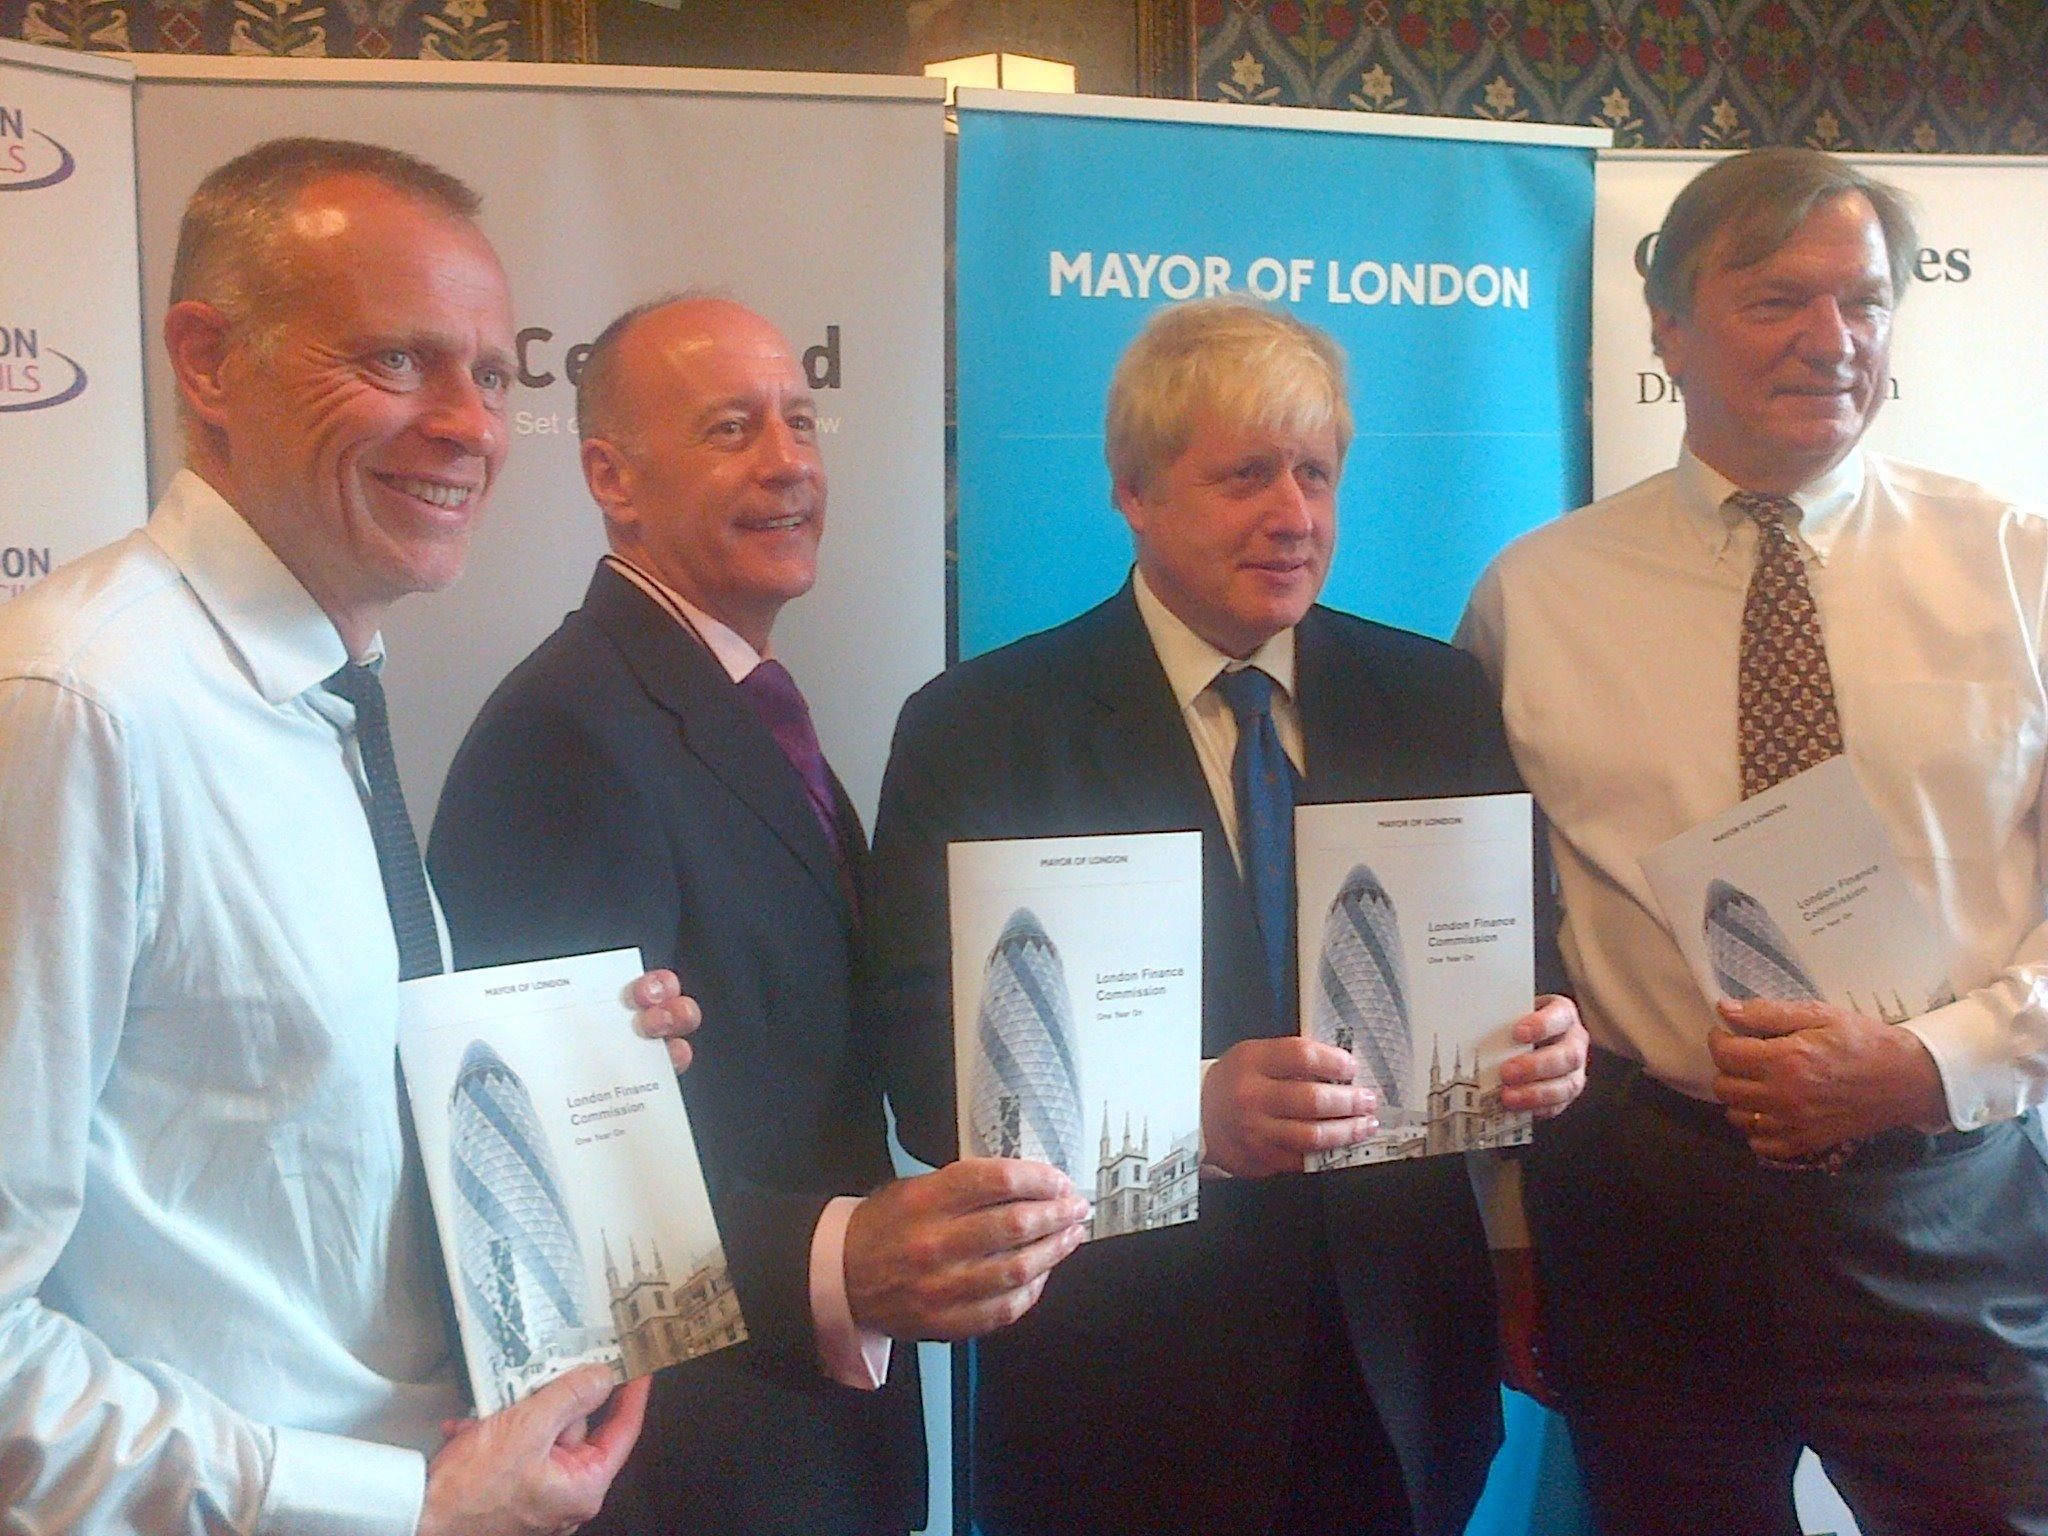 At launch of London Finance Commission one year on report calling for greater fiscal devolution #citycentred http://t.co/XQQrBYwftW